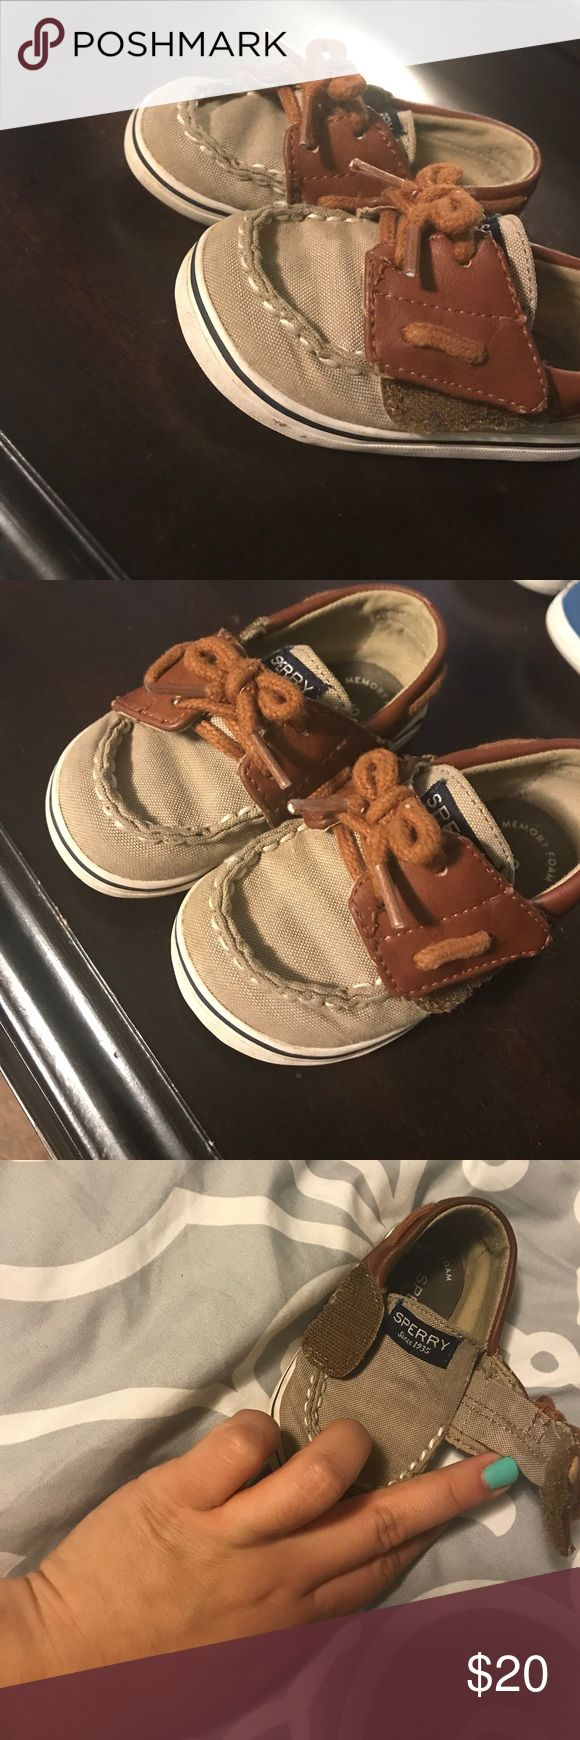 Toddler sperrys size 4m Used by my baby boy he out grew them so fast a lot of life left in them feel free to make offers I have the original box the came with them thanx 🤤 Sperry Shoes Dress Shoes